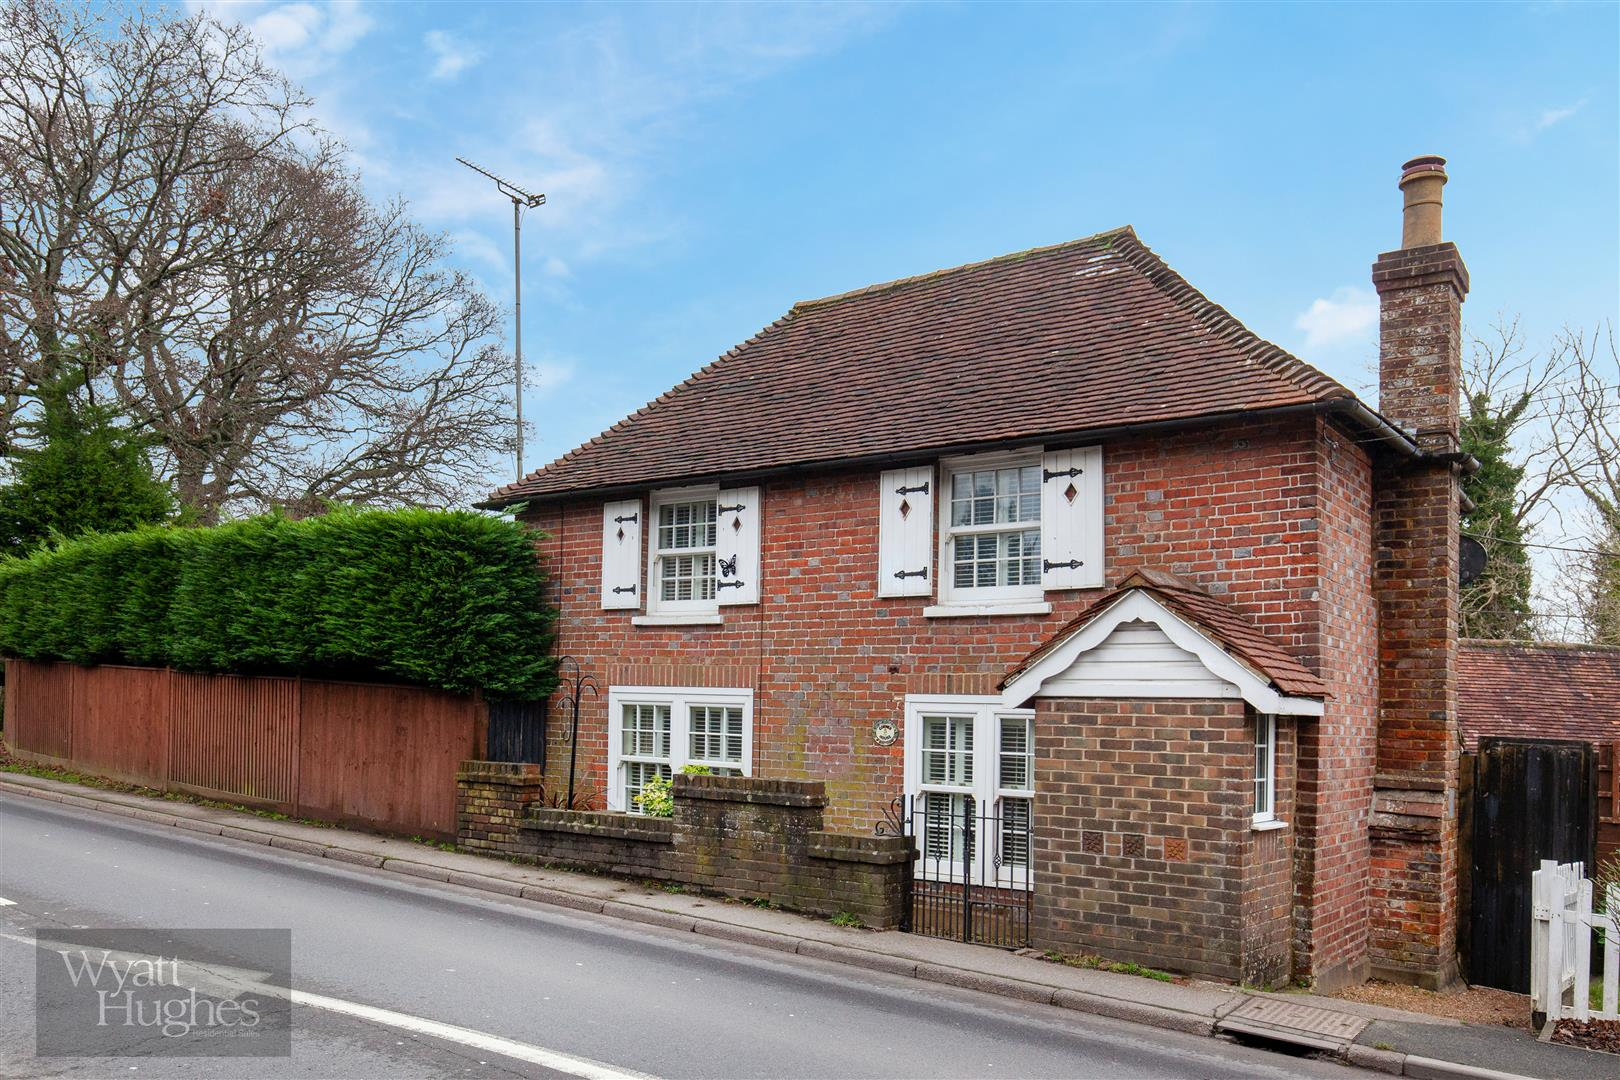 3 bed cottage for sale in The Green, Catsfield, Battle - Property Image 1